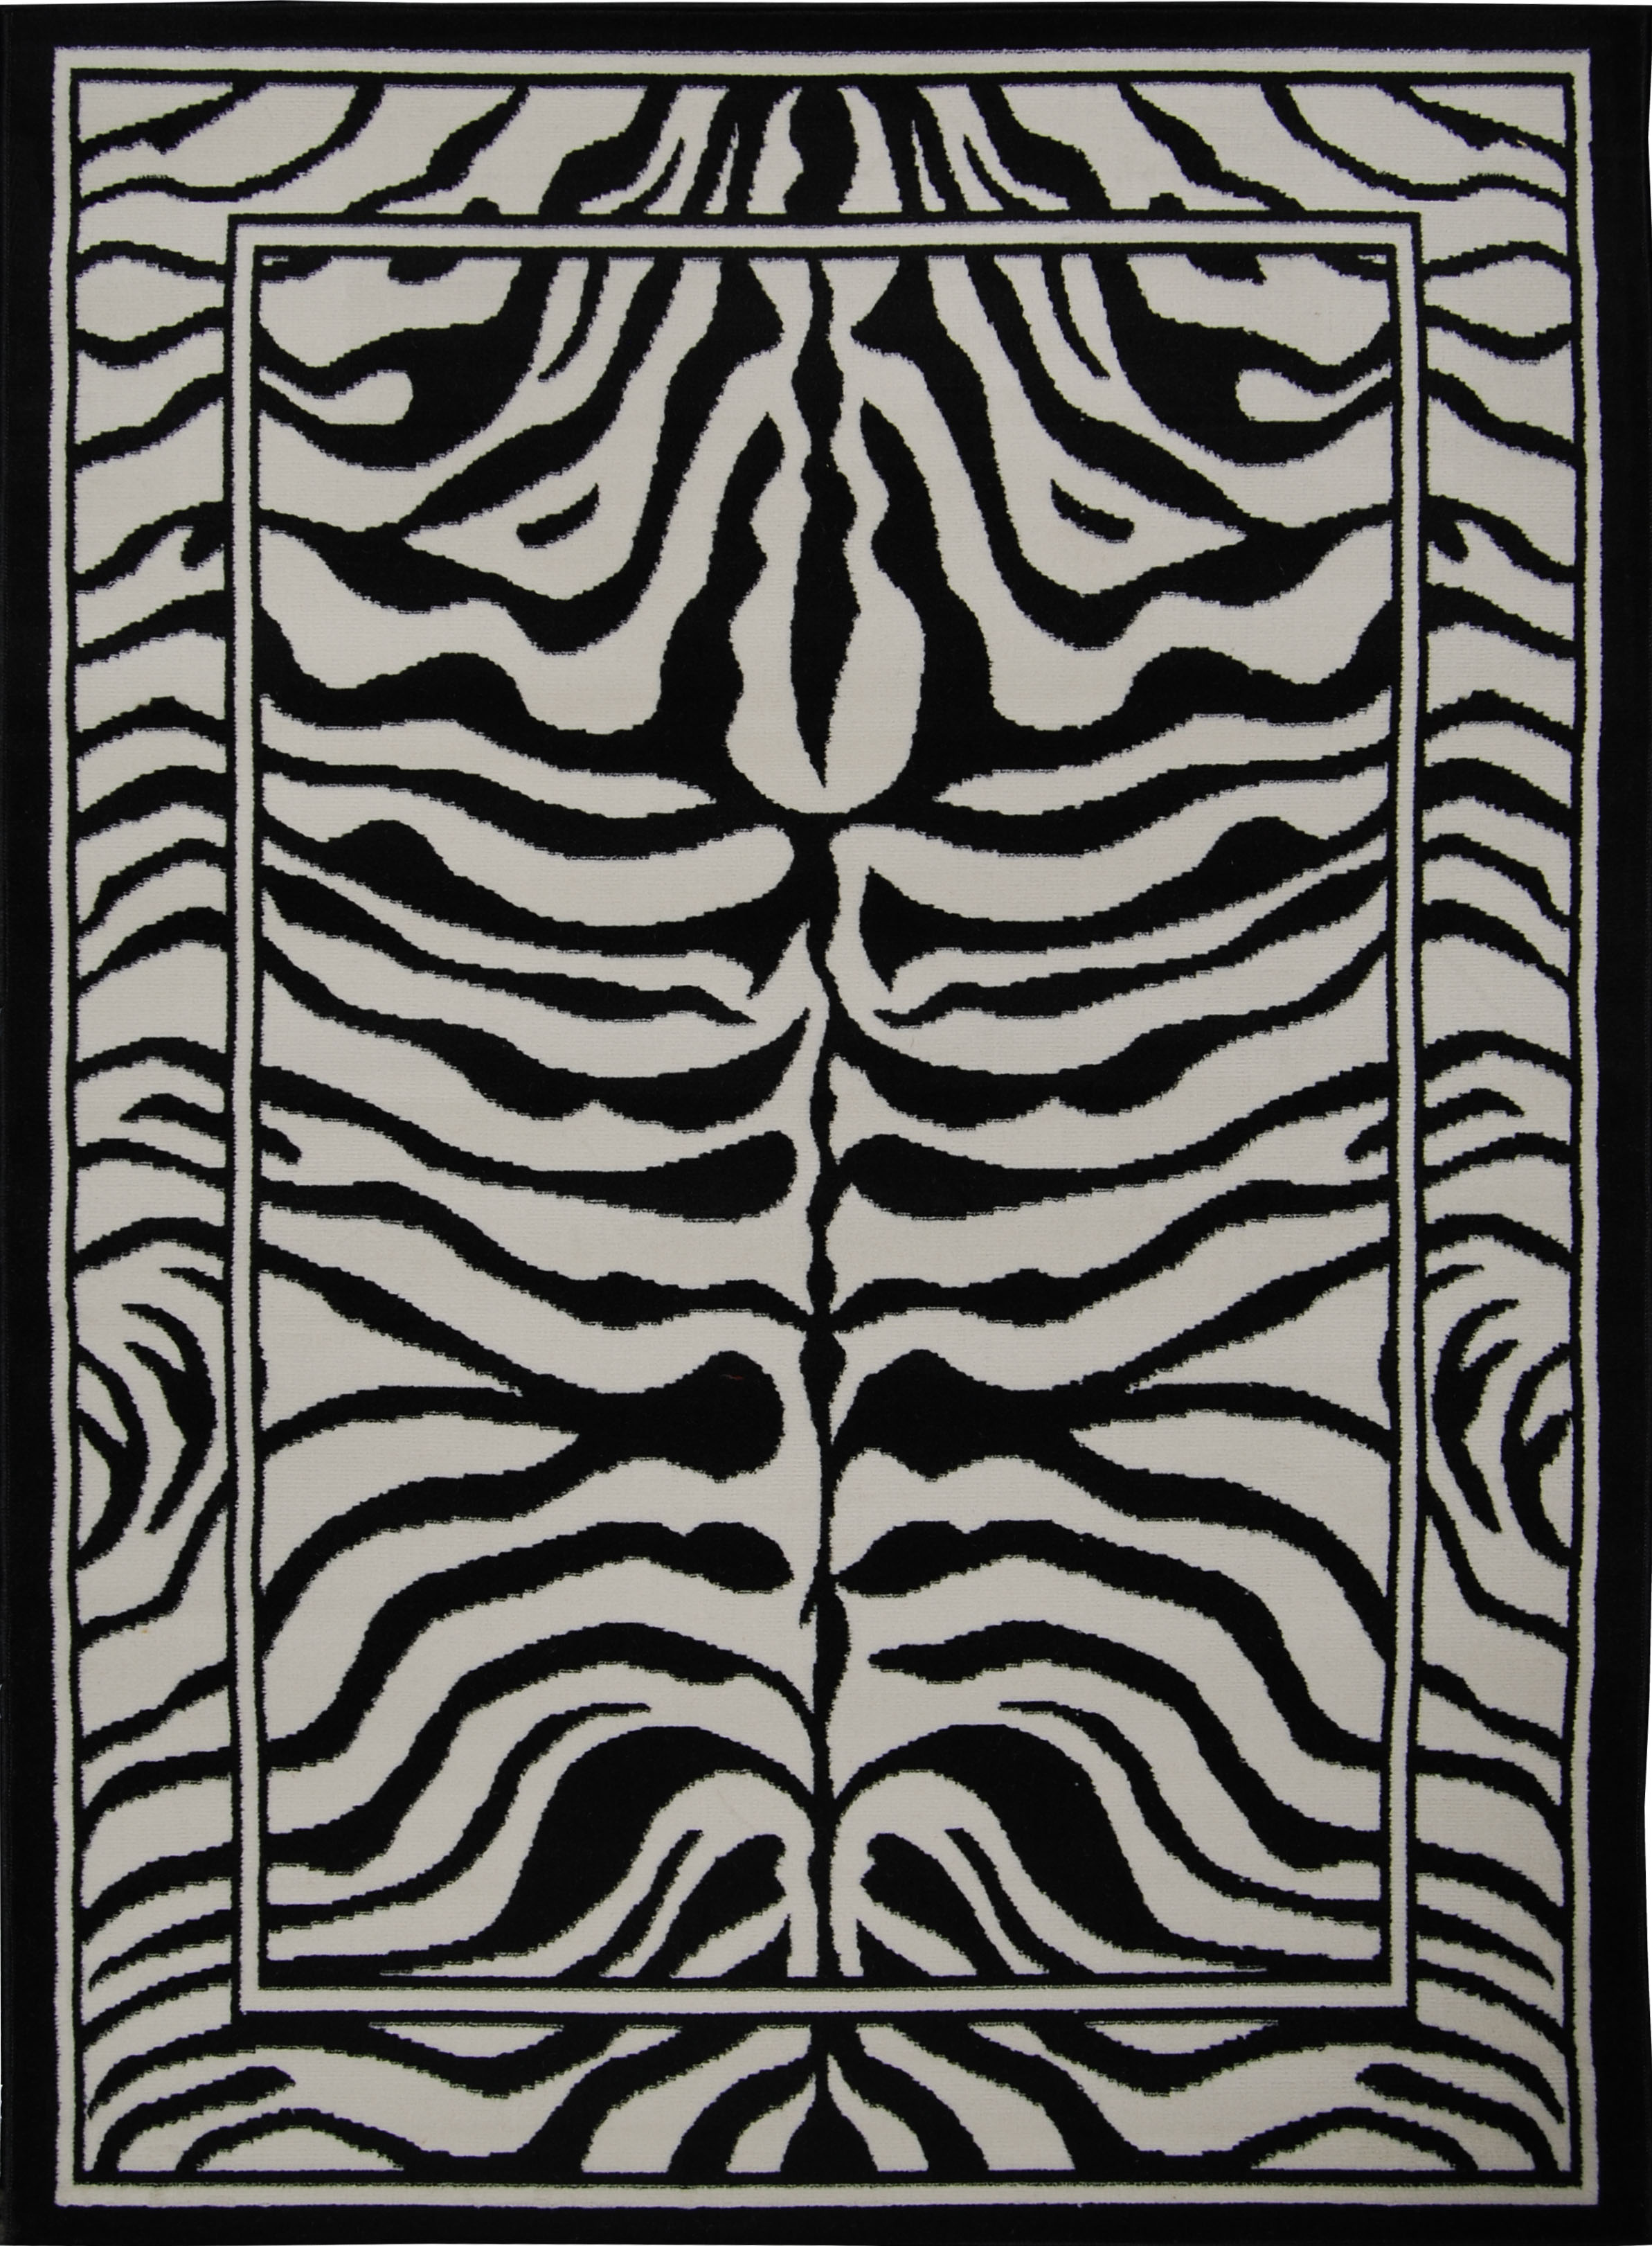 Animal Print Zebra Skin Area Rug Exotic Striped African